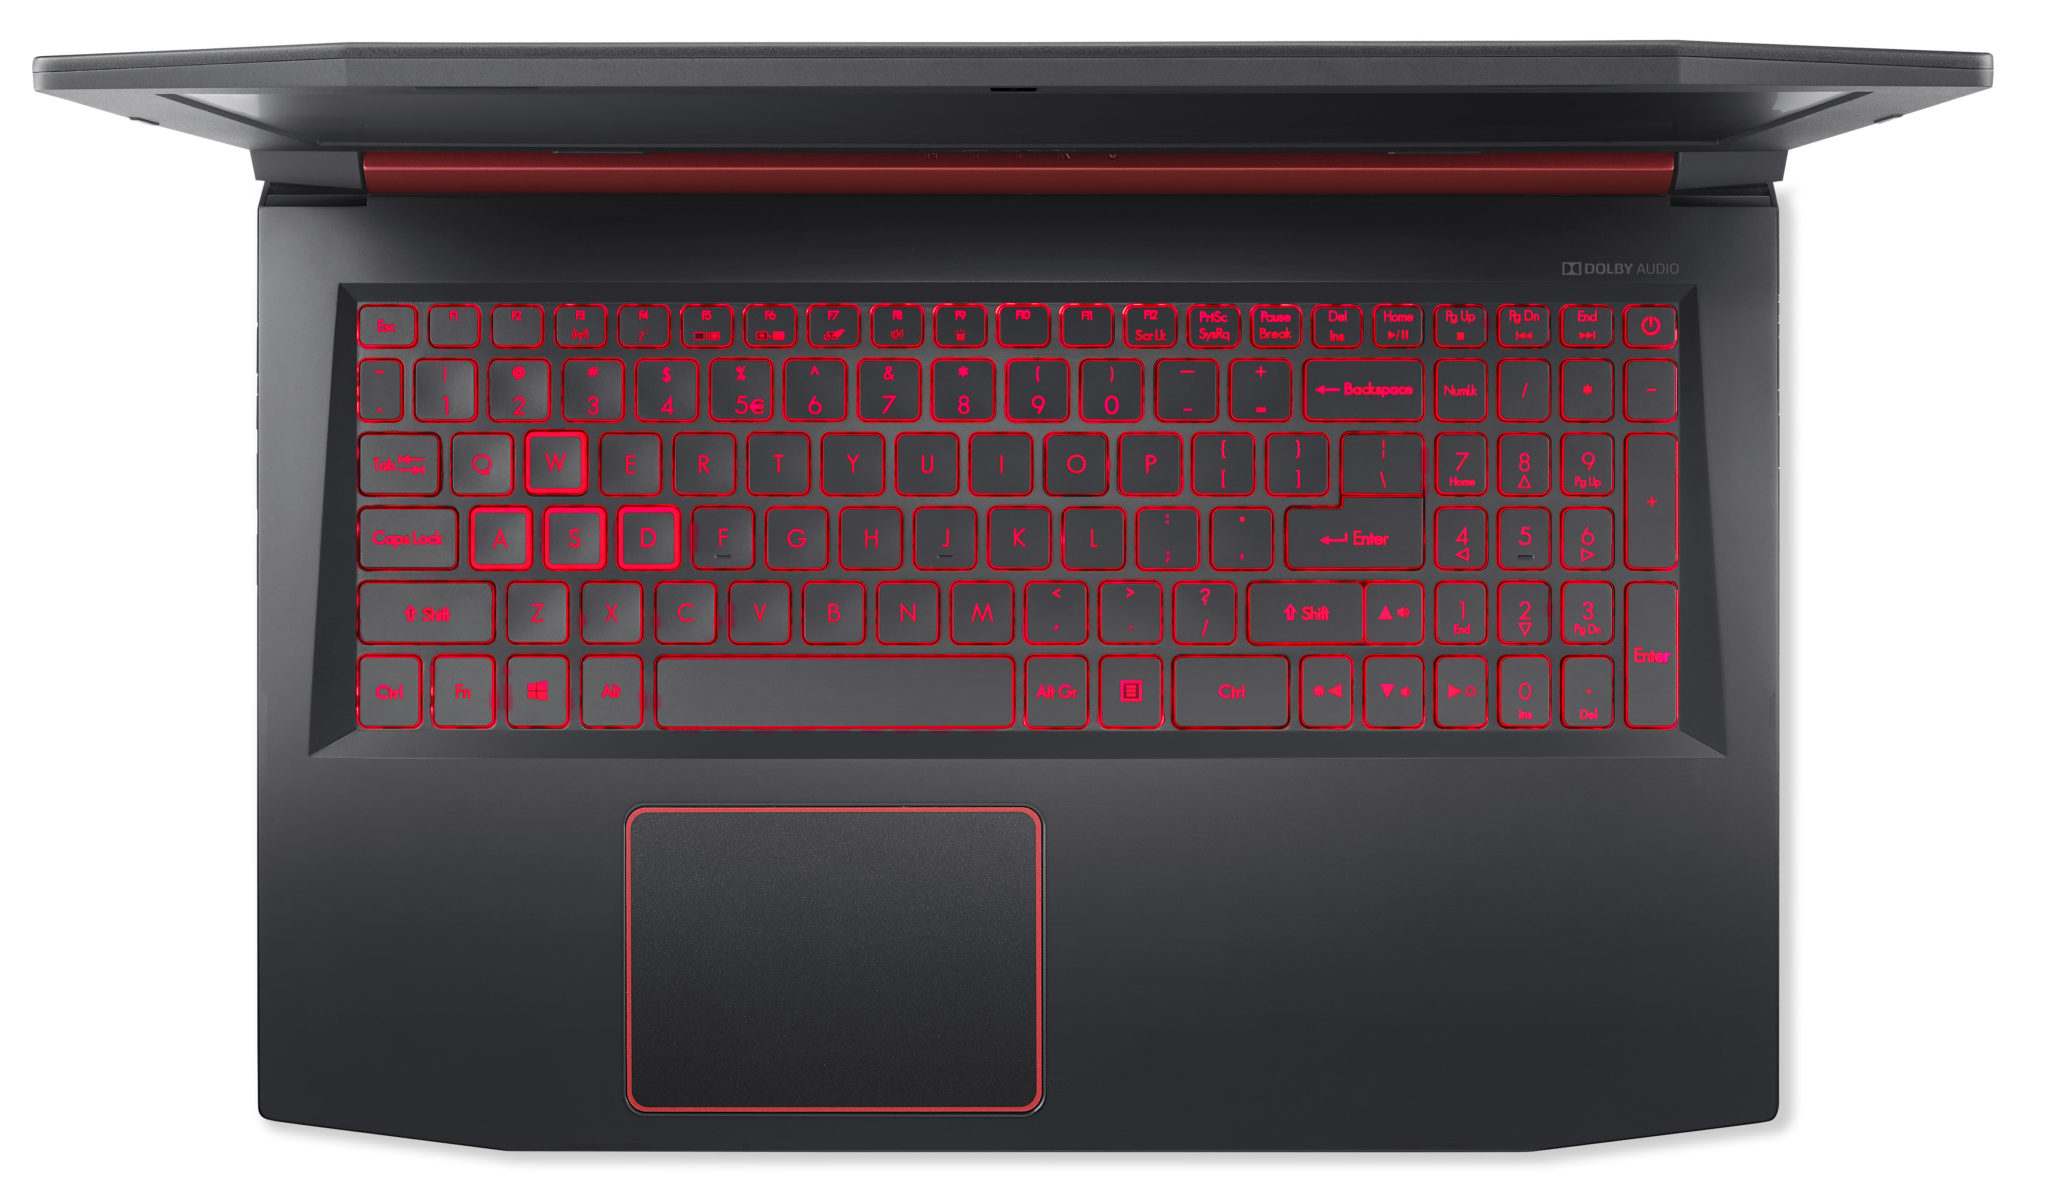 Acer-Nitro-5-top-keyboard.jpg